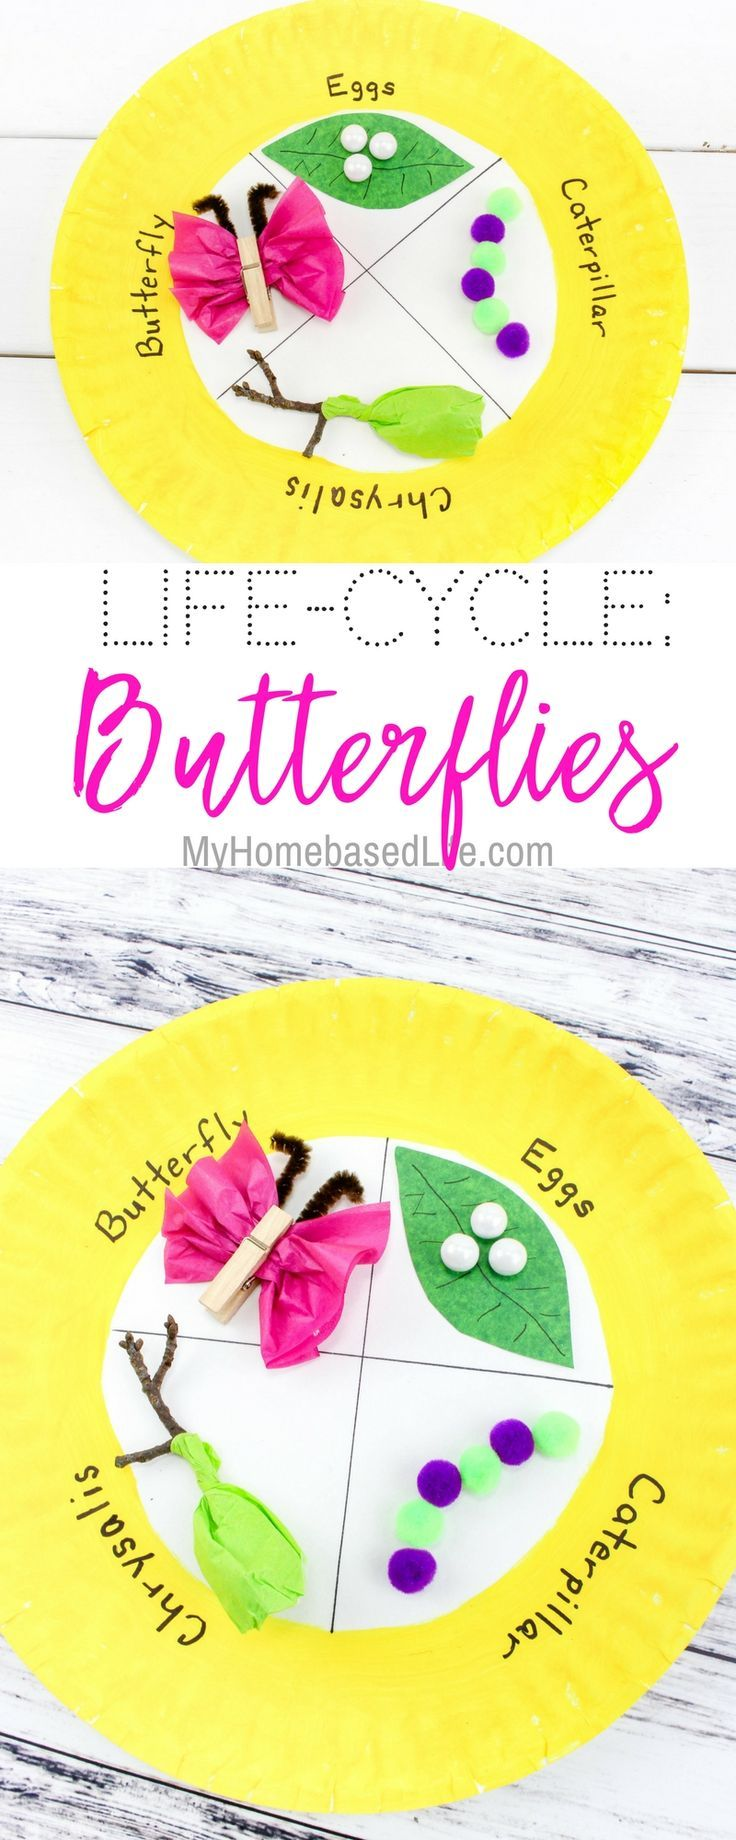 Dig into this simple craft activity for kids learning about the life cycle of a butterfly. This is a great science project idea as well. @science #homeschoolingactivities #lifecycles #metamorphosis #kidsactivity #myhomebasedlife | Homeschooling Lesson | Science Lessons | Life Cycles | Kids Activities | Kids Crafts | Simple Kids Crafts | Easy learning Activities | Science learning Activities via @myhomebasedlife